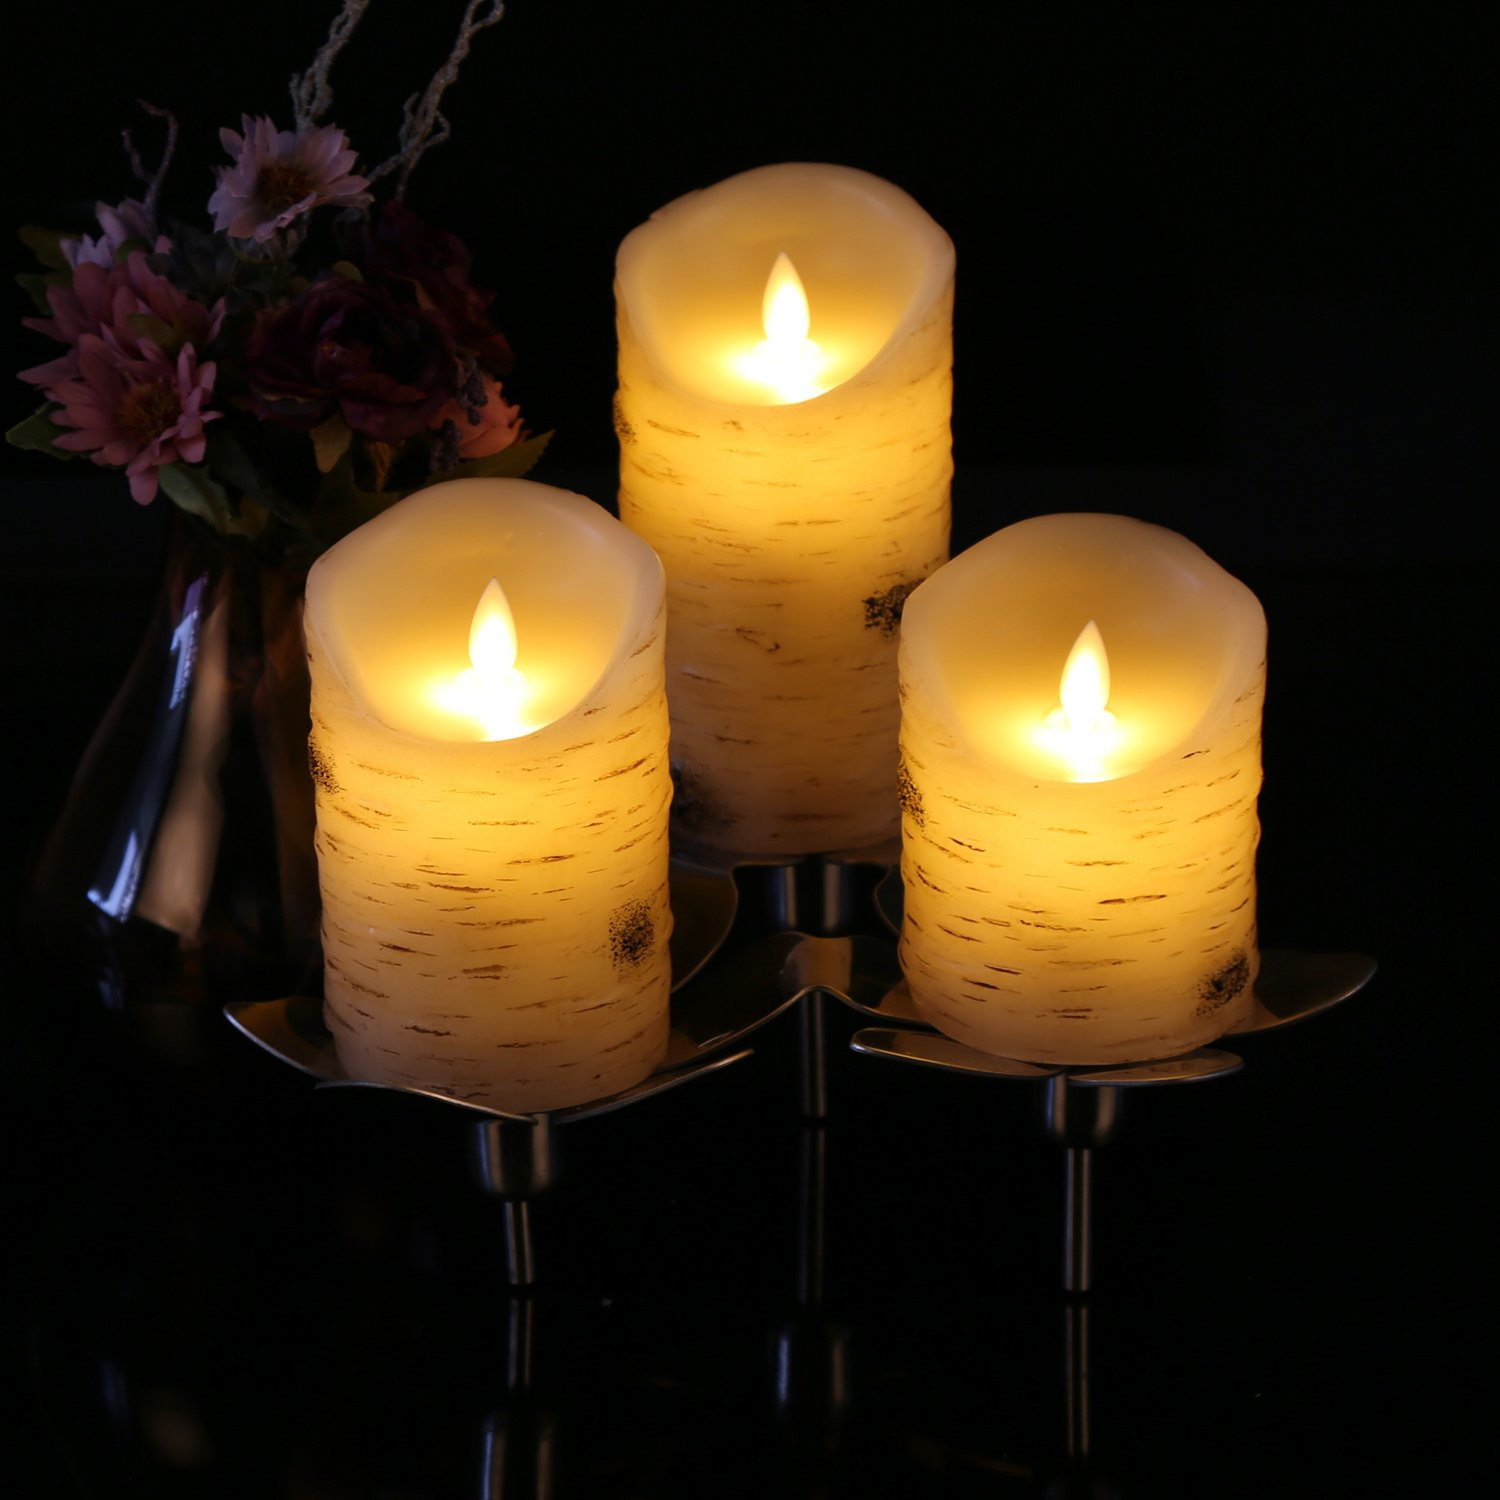 H 4 5 6 7 8 9 x D 2.2 Antizer Flameless Candles Led Candles Pack of 9 Ivory Real Wax Battery Candles with Remote Timer ATCST90W